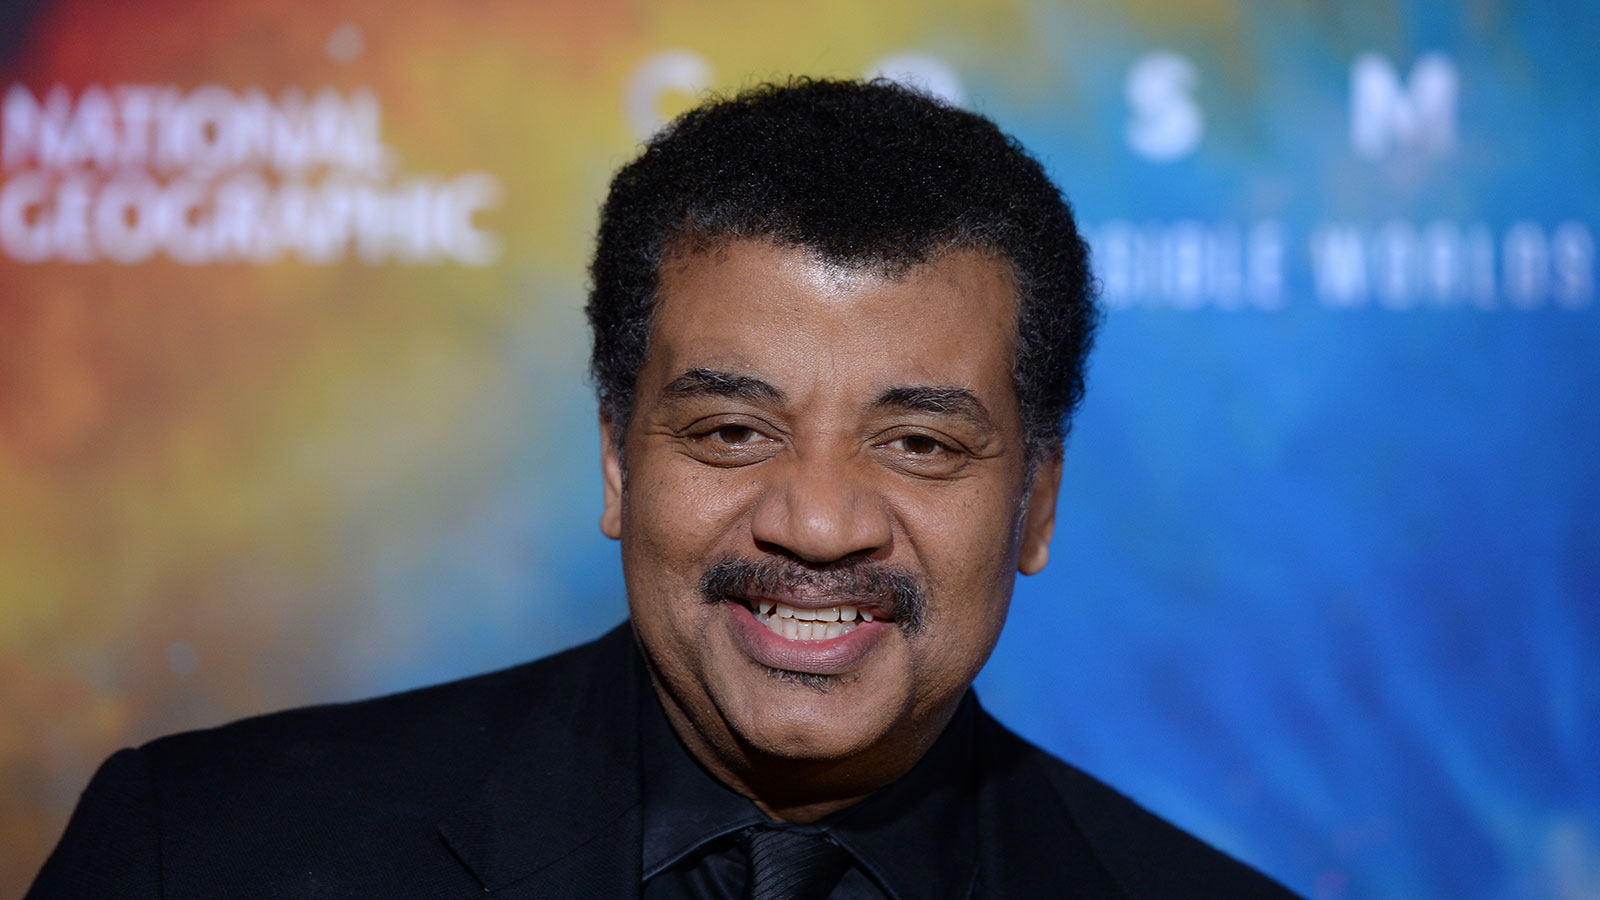 10 Cool Things About Neil deGrasse Tyson thumbnail